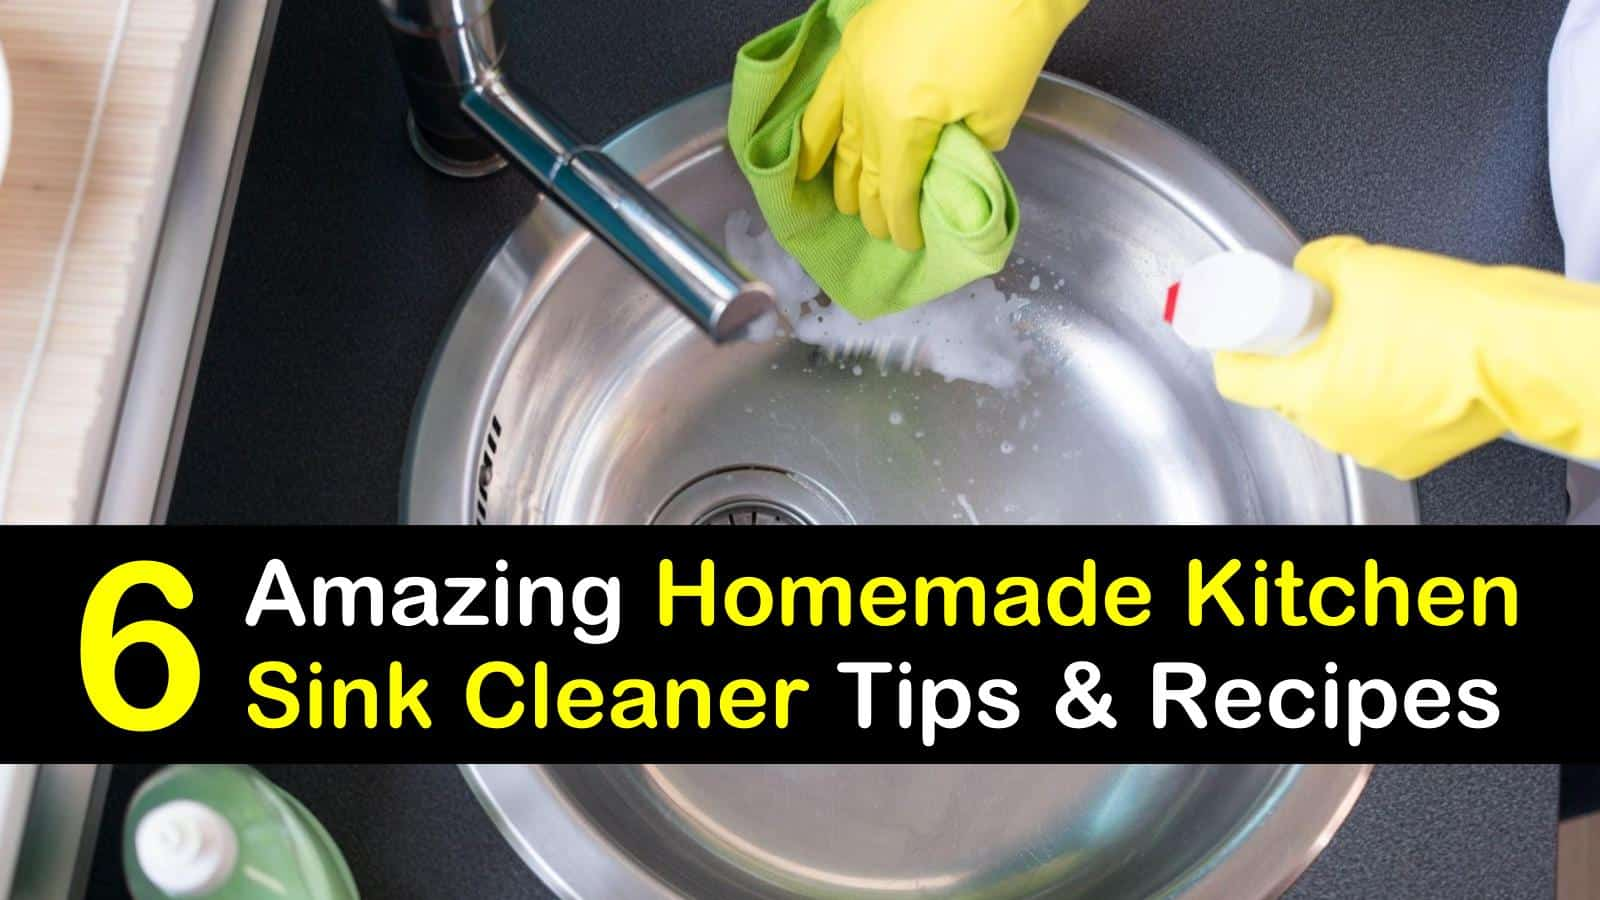 homemade kitchen sink cleaner titleimg1